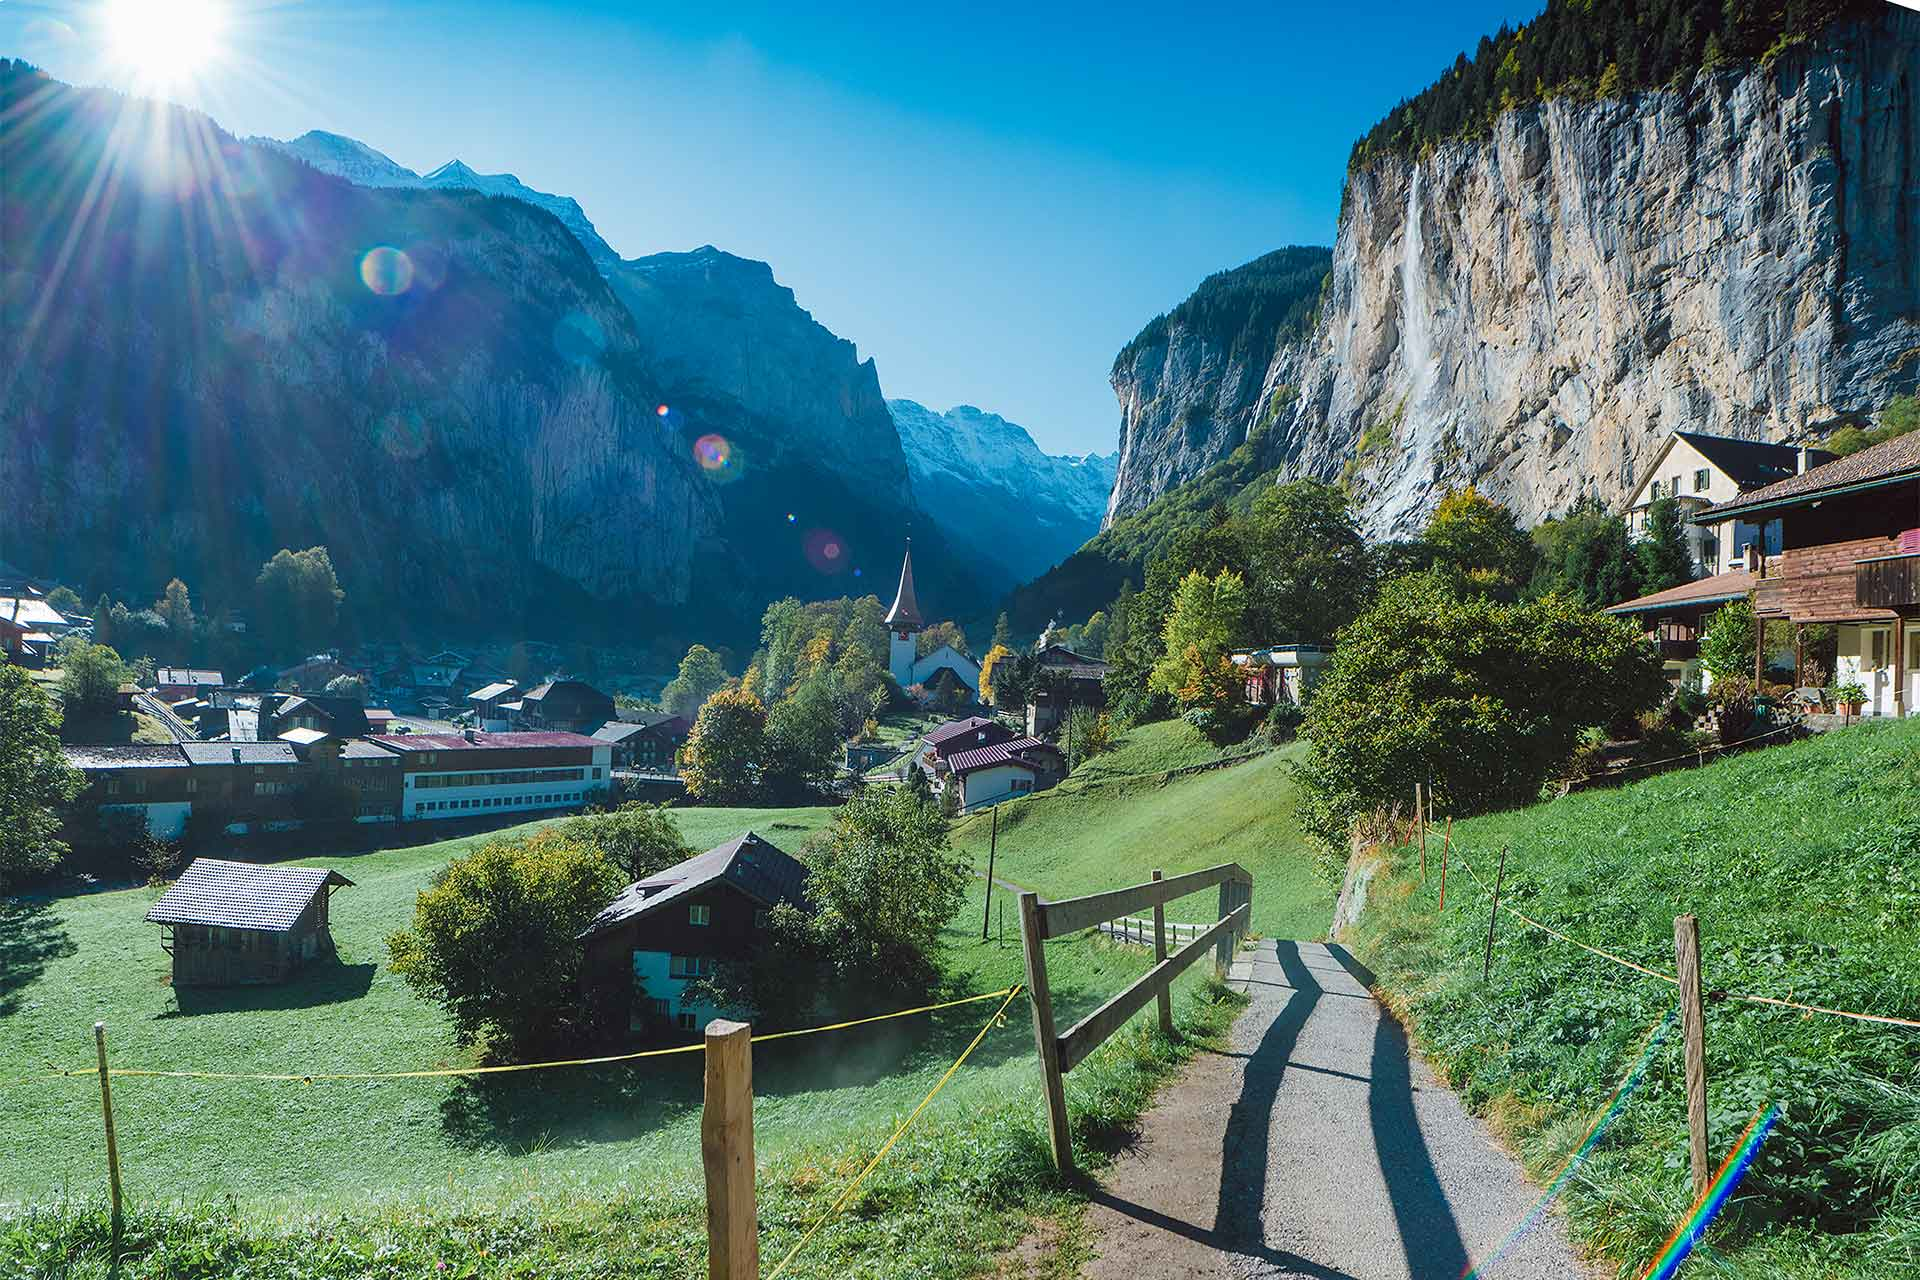 Photo location in Lauterbrunnen